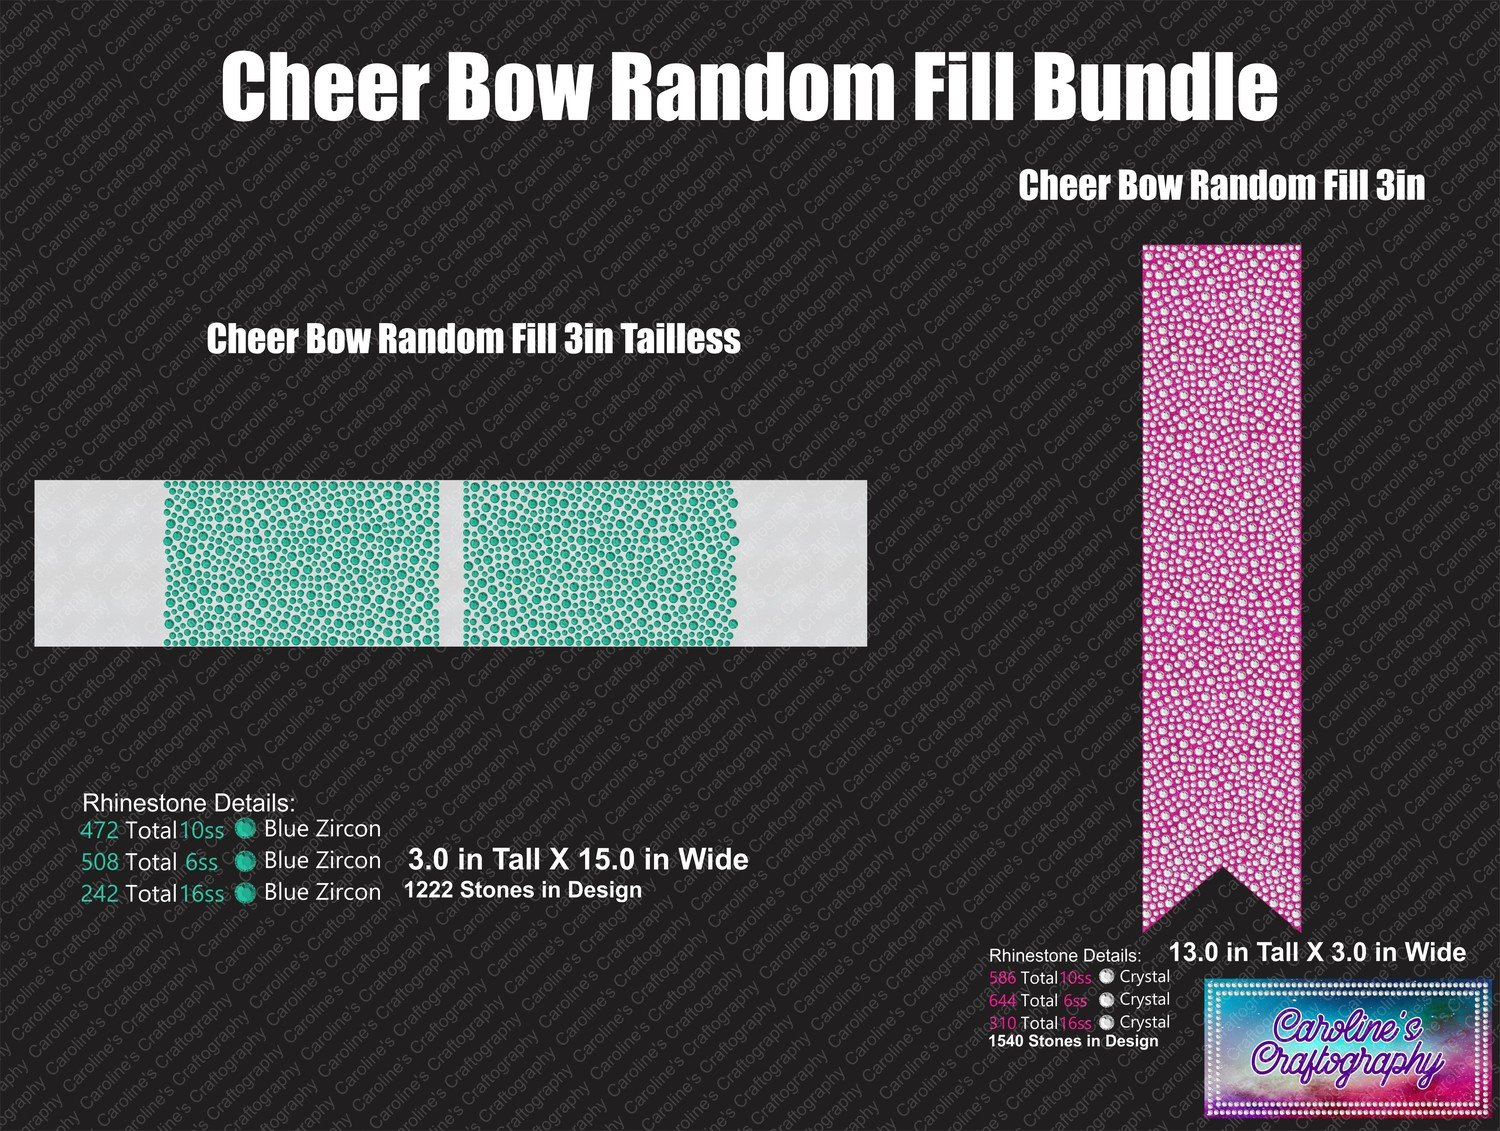 Cheer Bow and Tailless Random Fill Multi Stone 3in Bundle